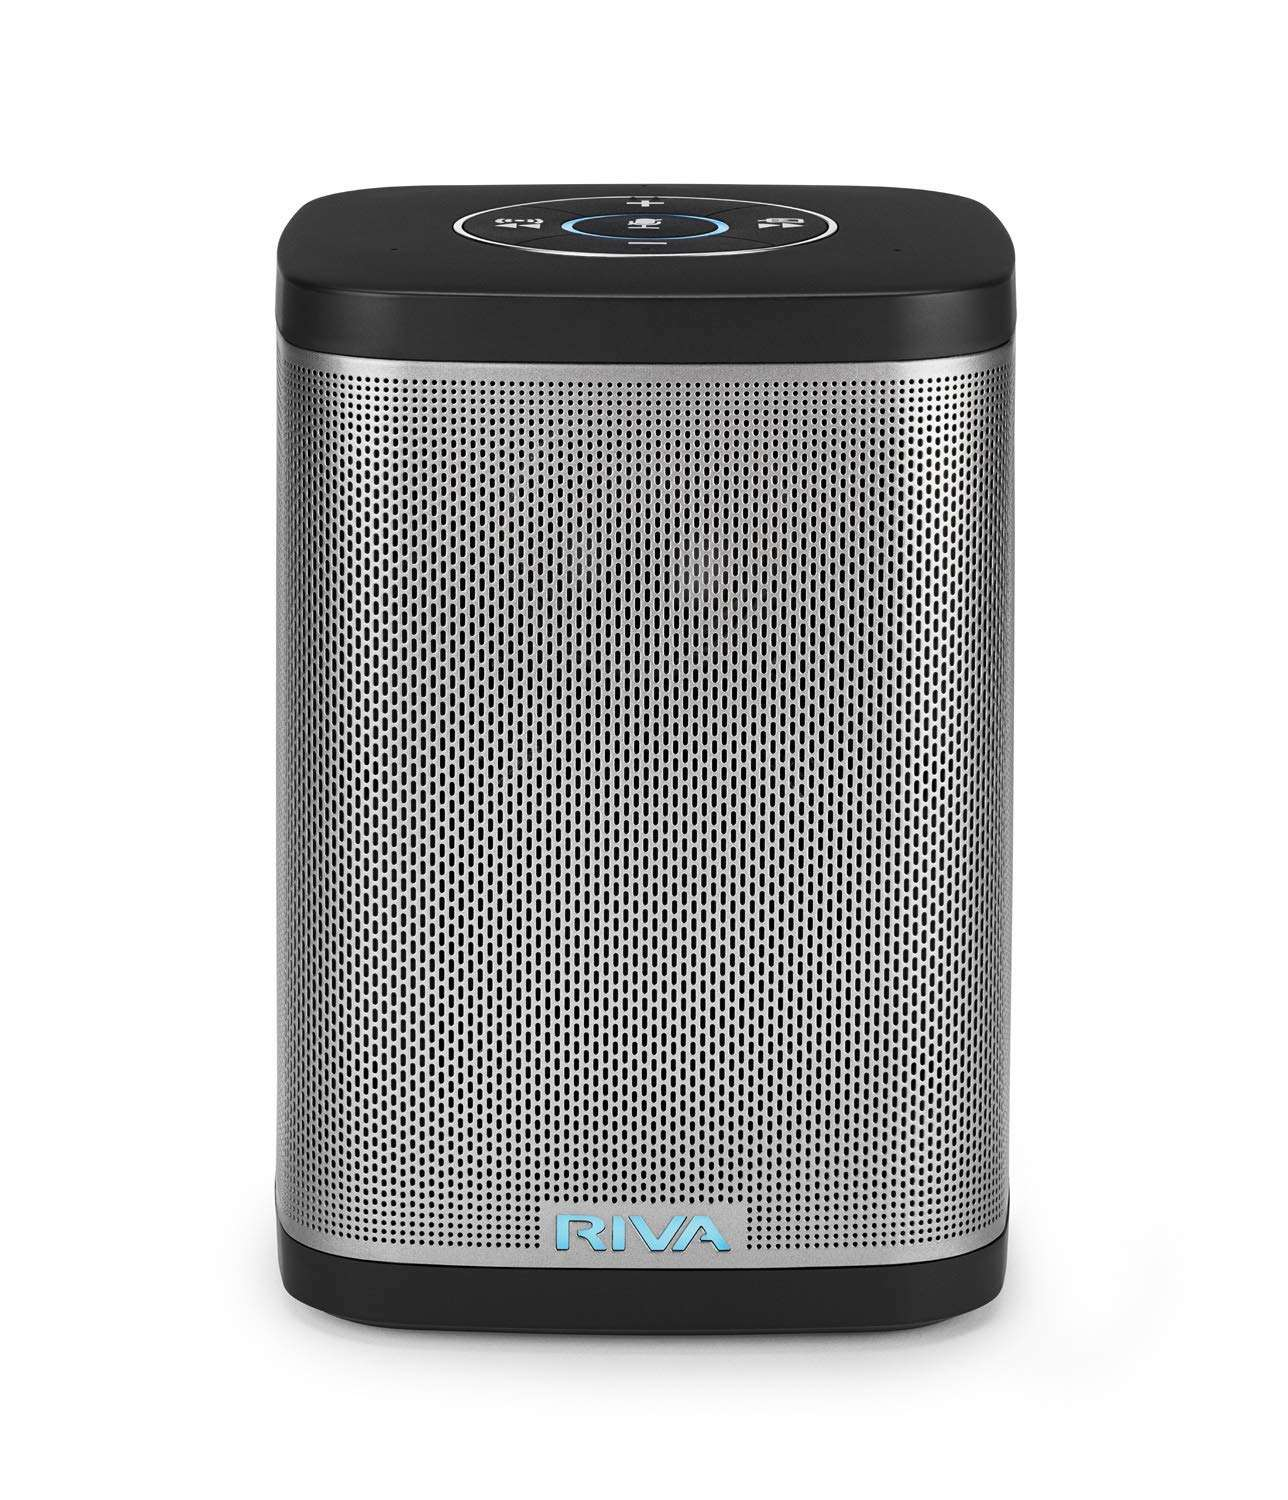 Save $20 on RIVA Concert with Alexa